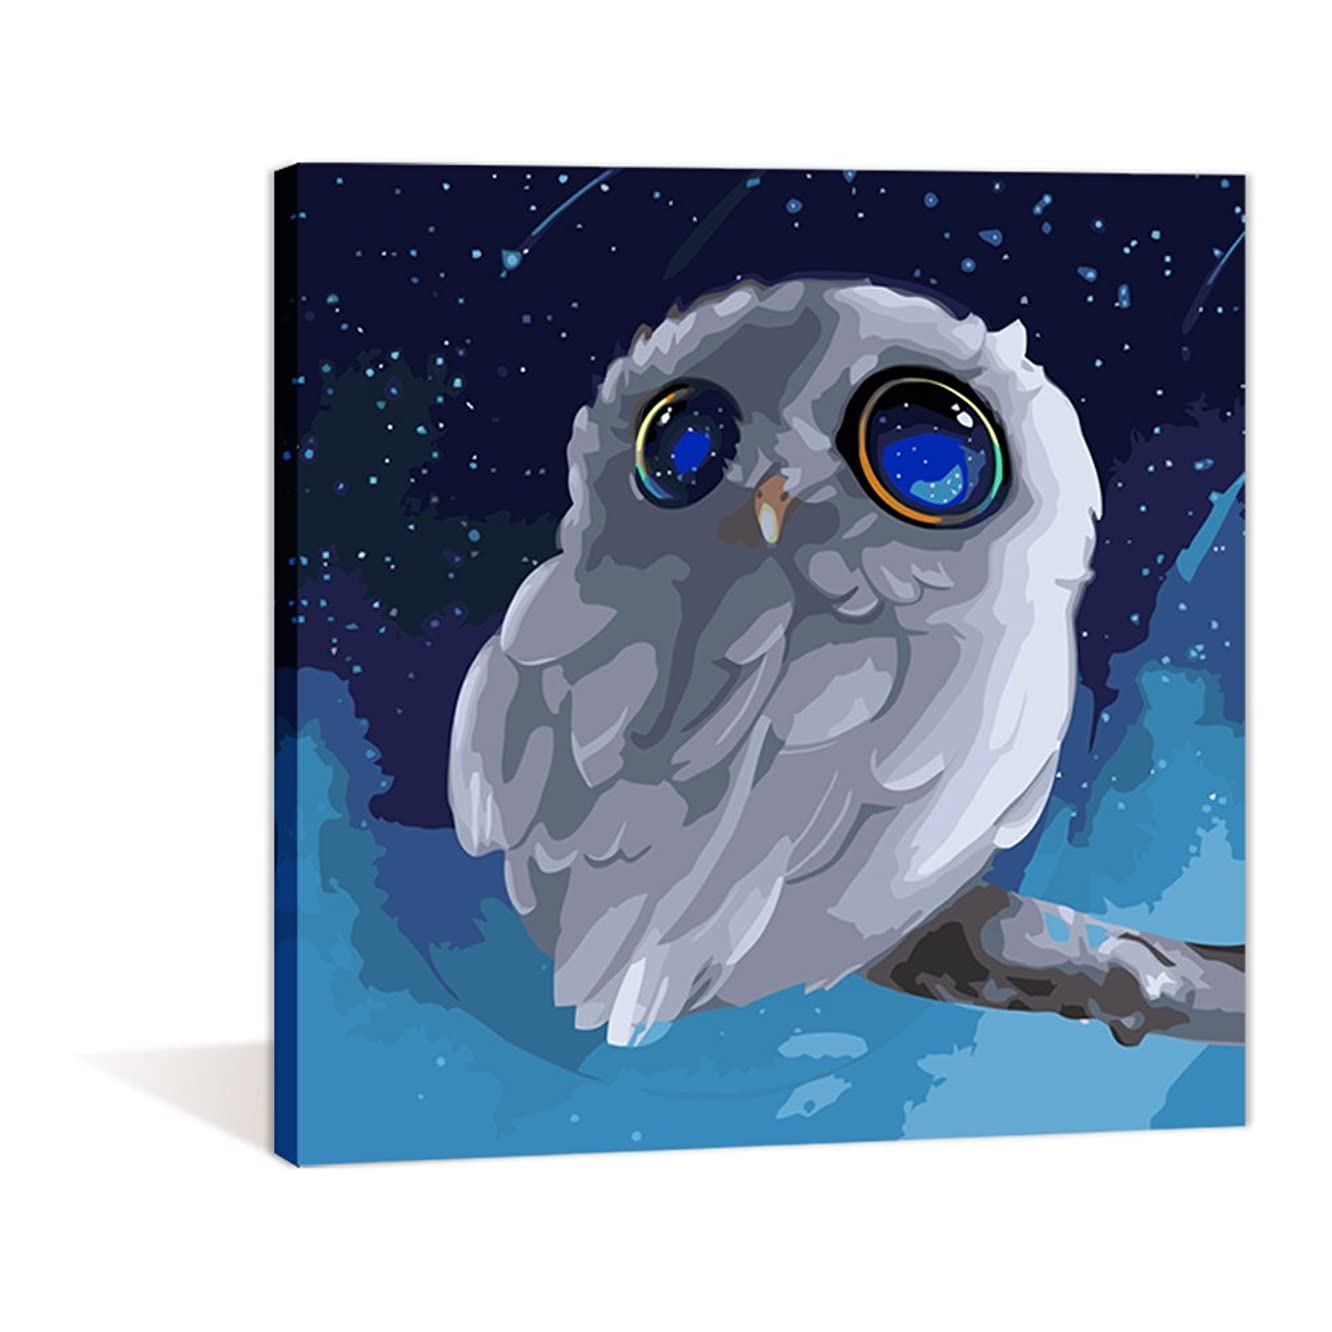 Paint by Numbers 16 x 20 inch Canvas Art Kits DIY Oil Painting for Kids/Students/Adults Beginner Wall Decorative Painting, Animal Owl(Frameless)